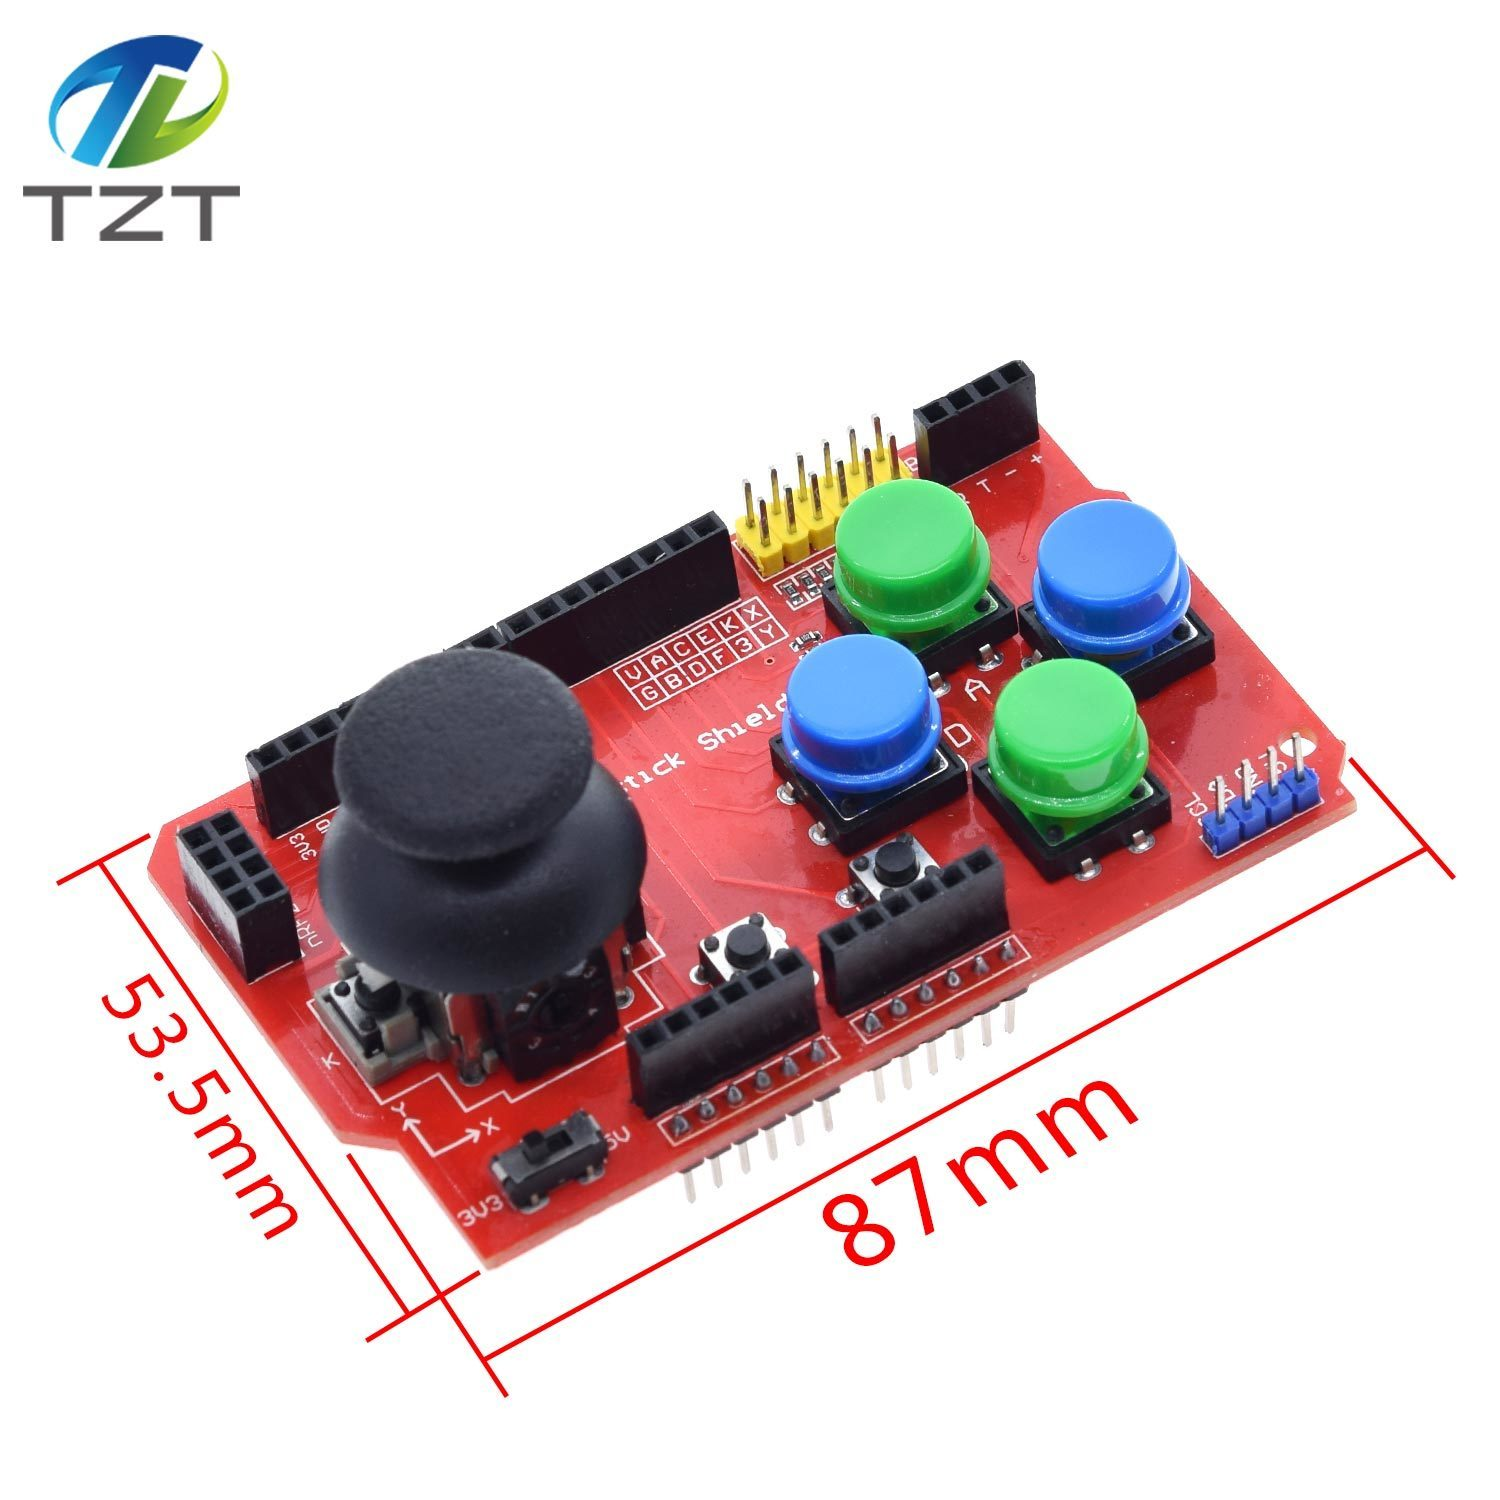 HOT SALE] Joystick Shield for Arduino Expansion Board Analog